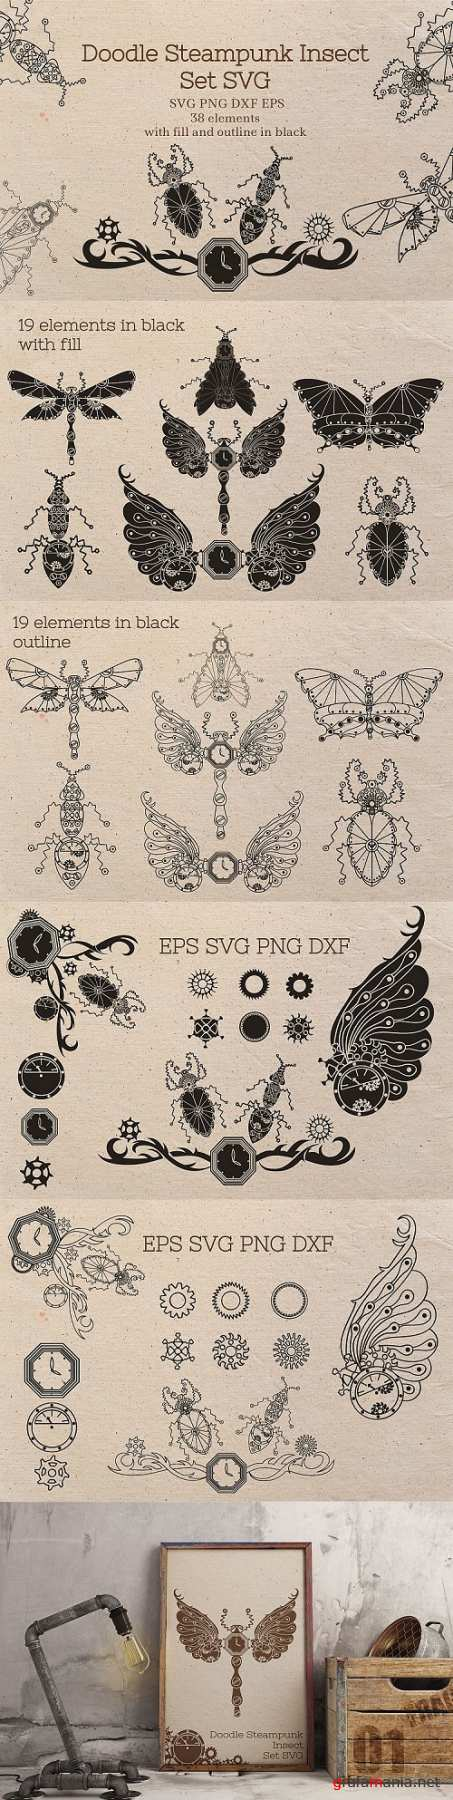 Doodle Steampunk Insect Set SVG  - 472464